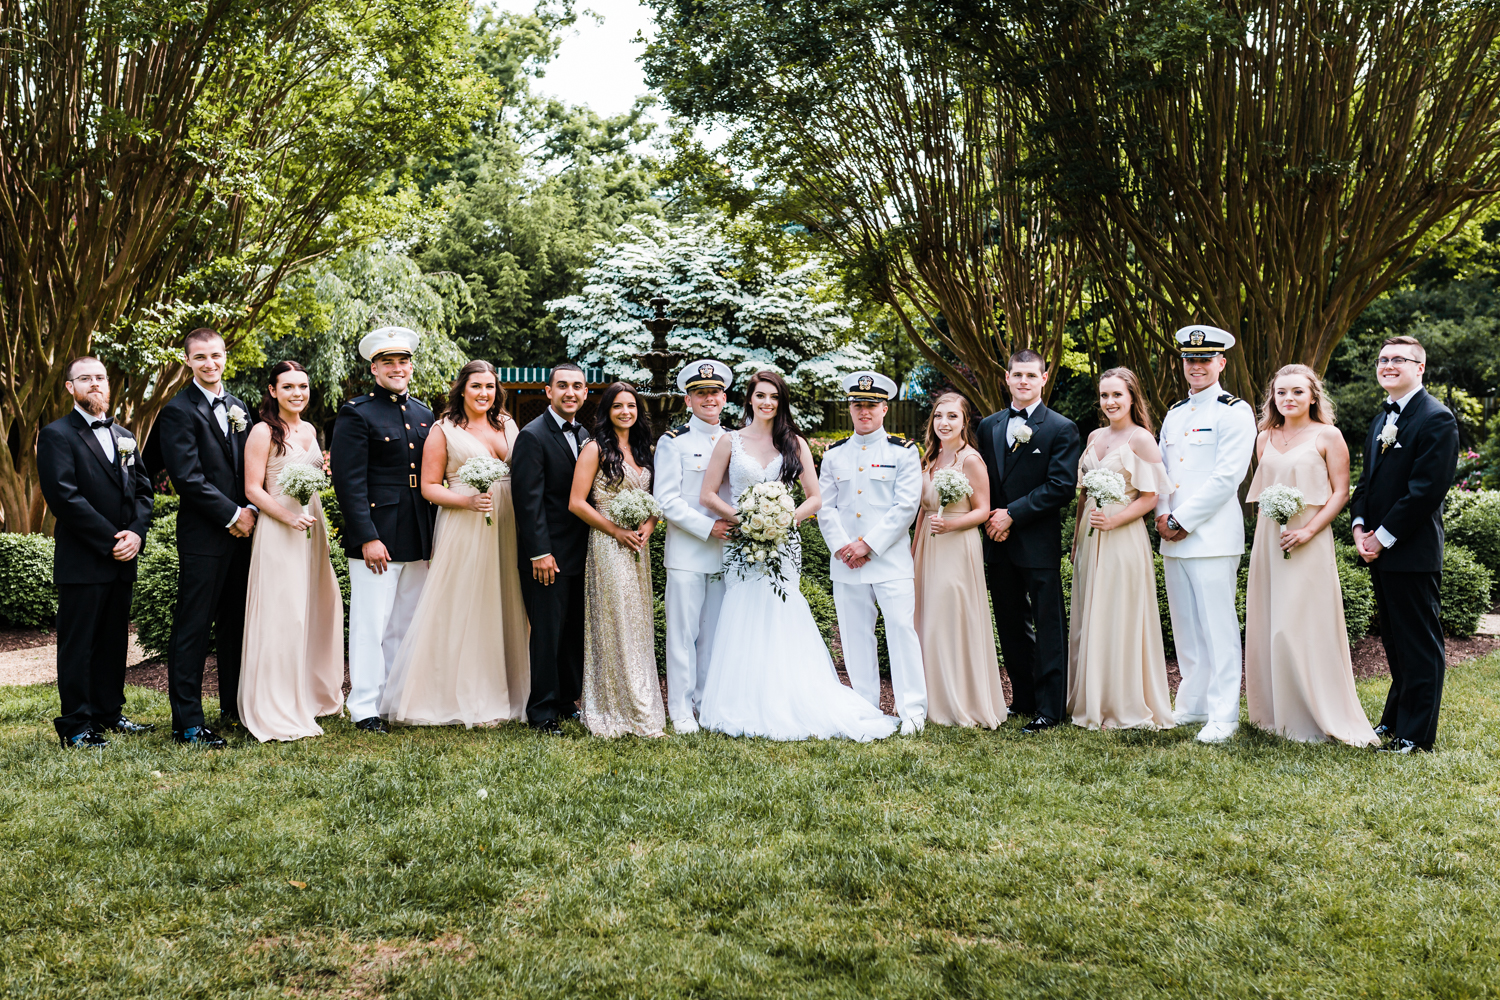 best husband and wife photo and video team in Annapolis, MD for weddings